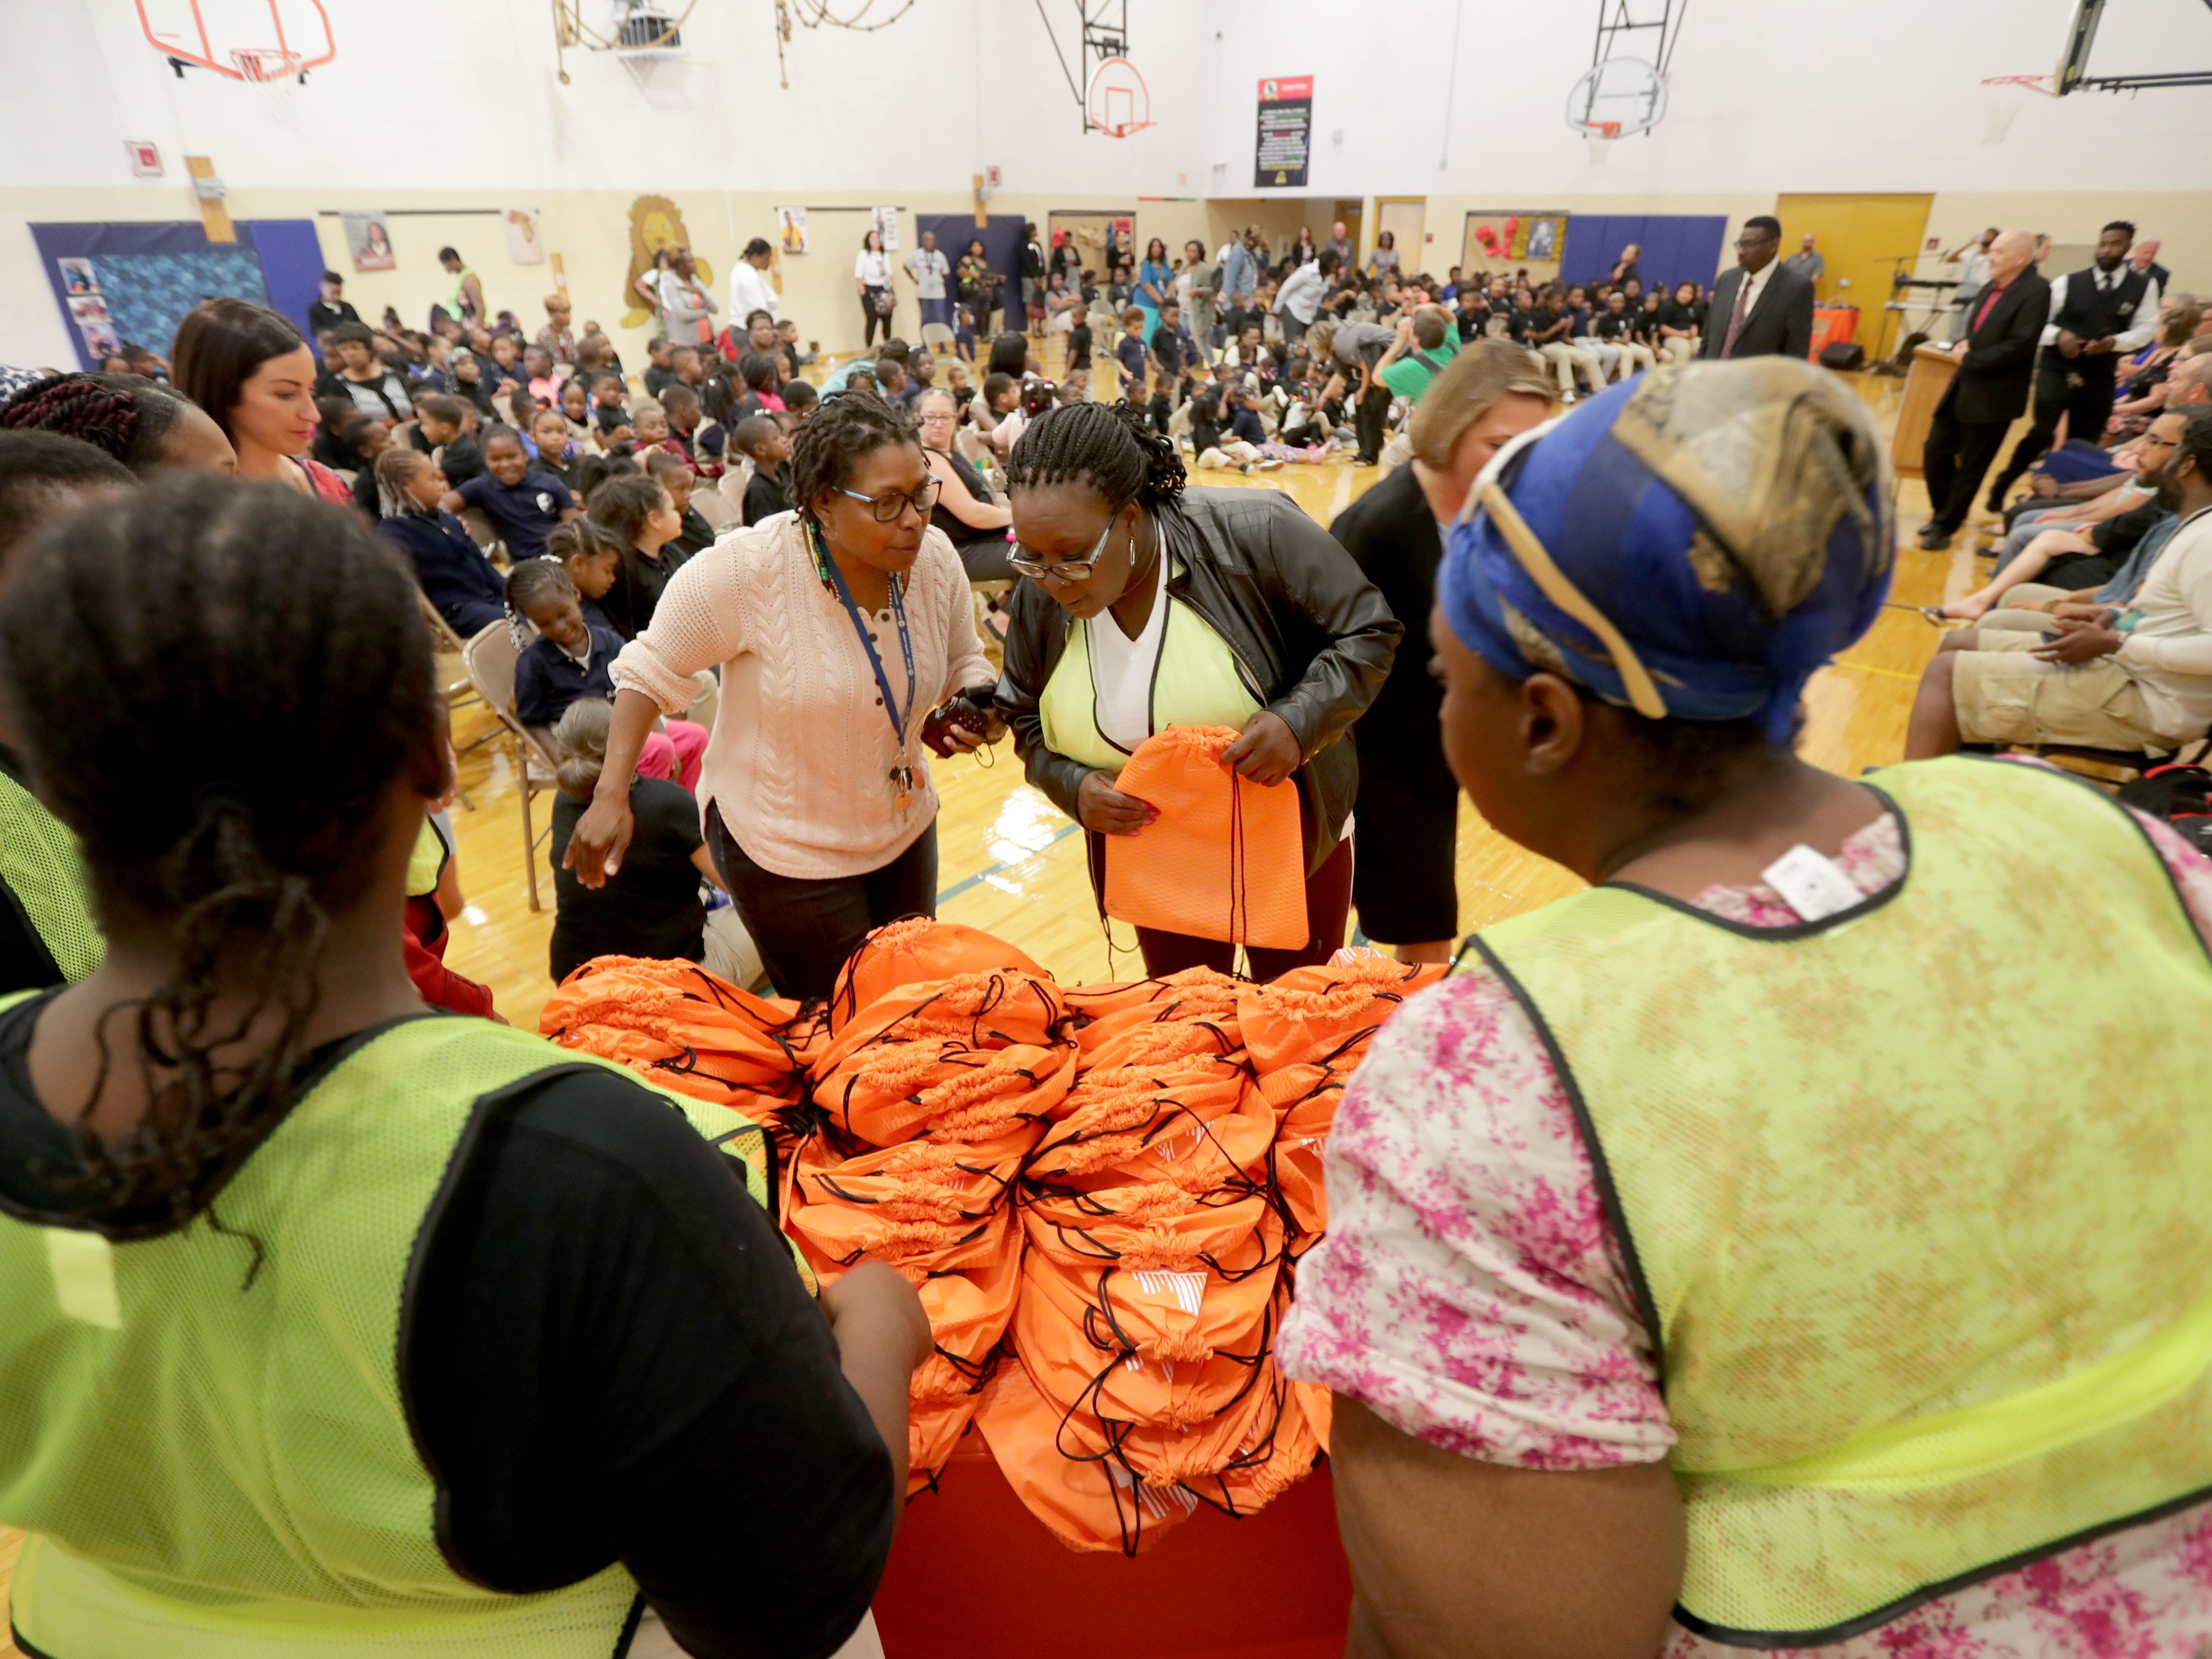 Volunteers organize the backpacks before handing them out.